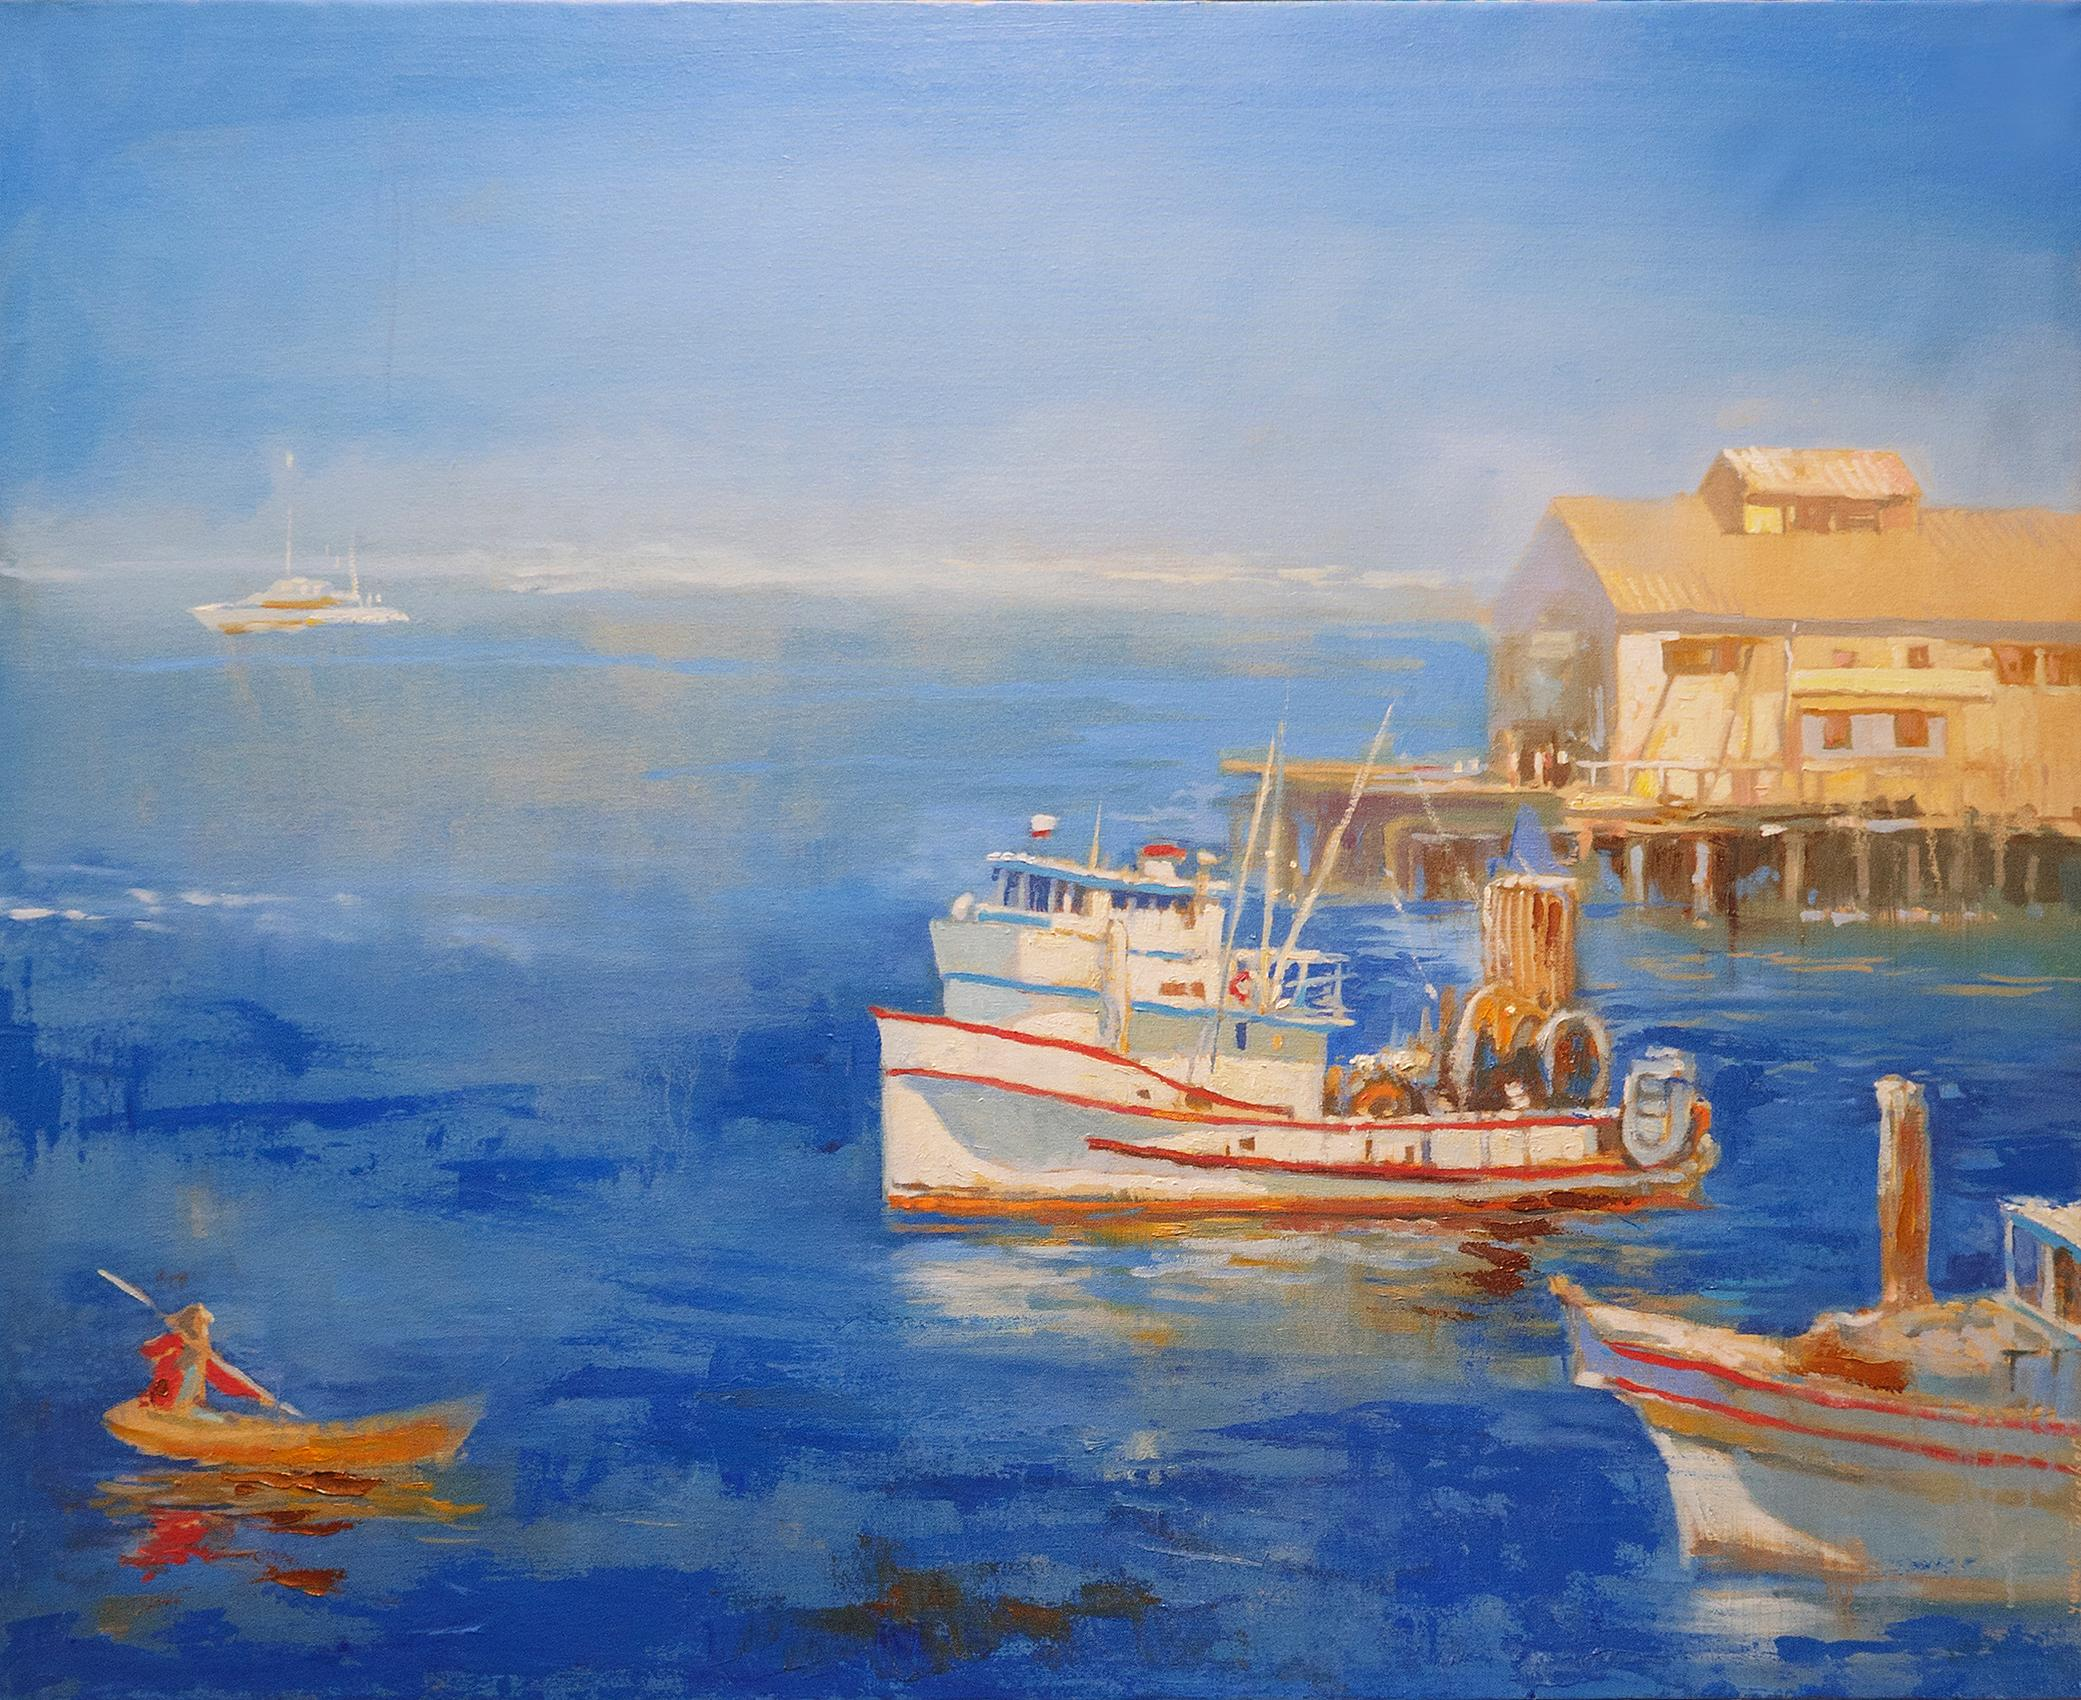 A Fishing Boat in Monterey Bay, Oil Painting